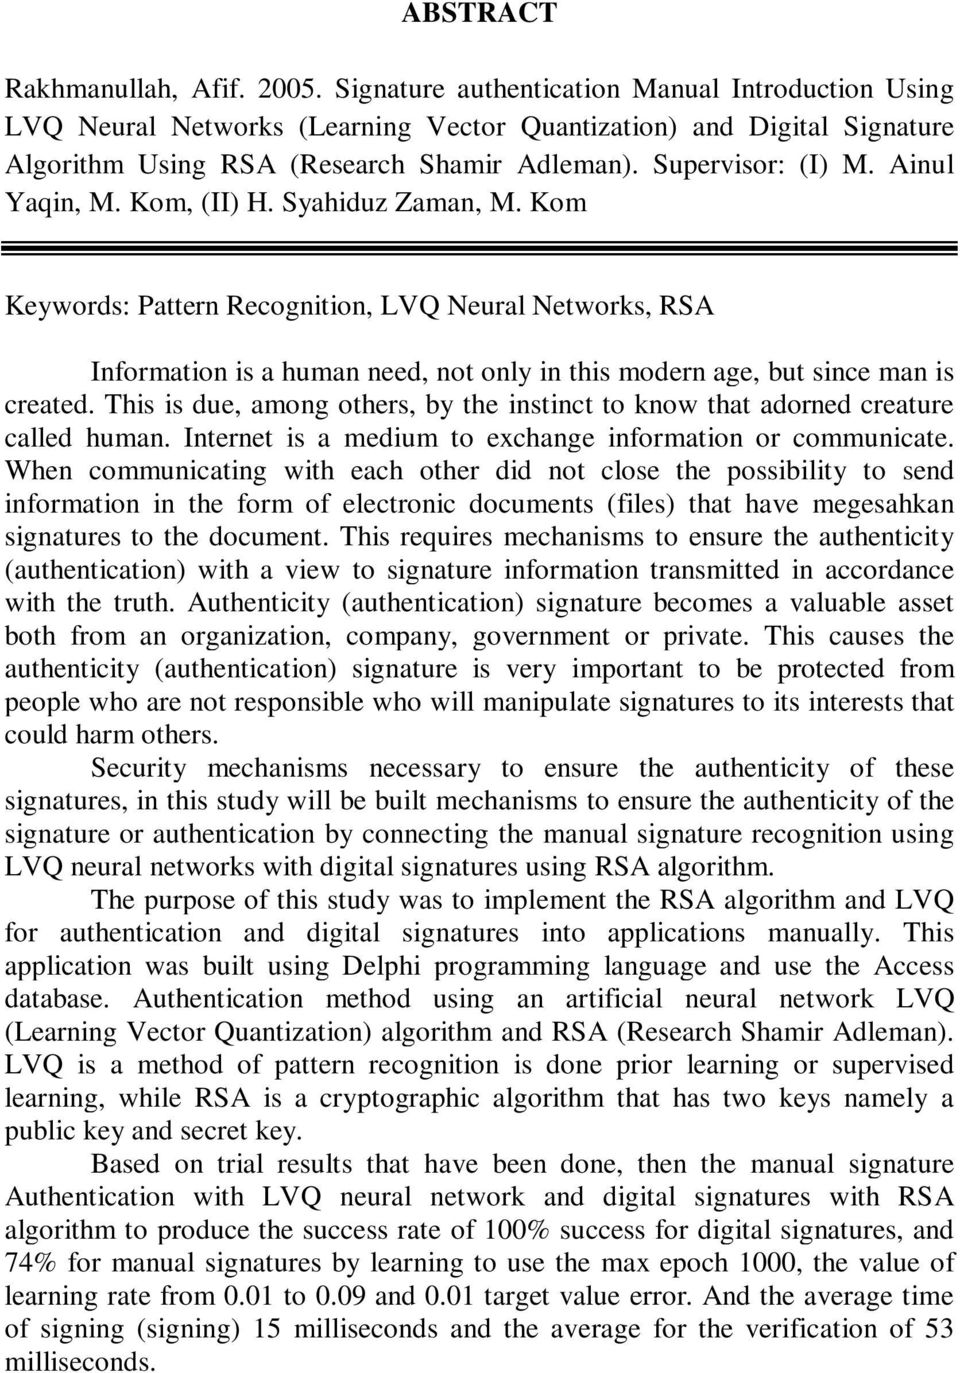 Ainul Yaqin, M. Kom, (II) H. Syahiduz Zaman, M. Kom Keywords: Pattern Recognition, LVQ Neural Networks, RSA Information is a human need, not only in this modern age, but since man is created.